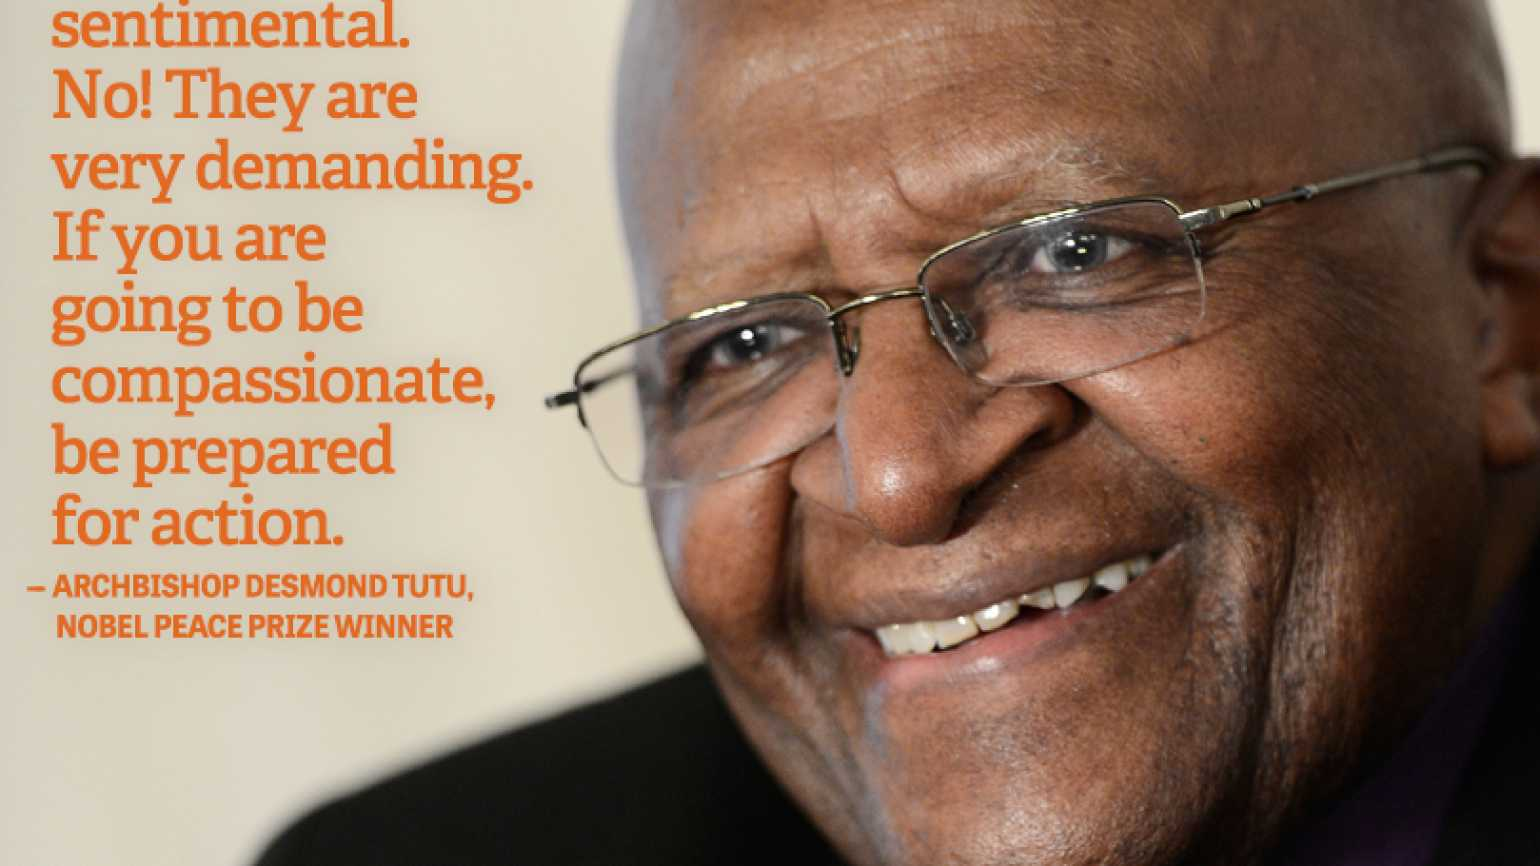 Desmond Tutu Quote Helping Others Love Compassion